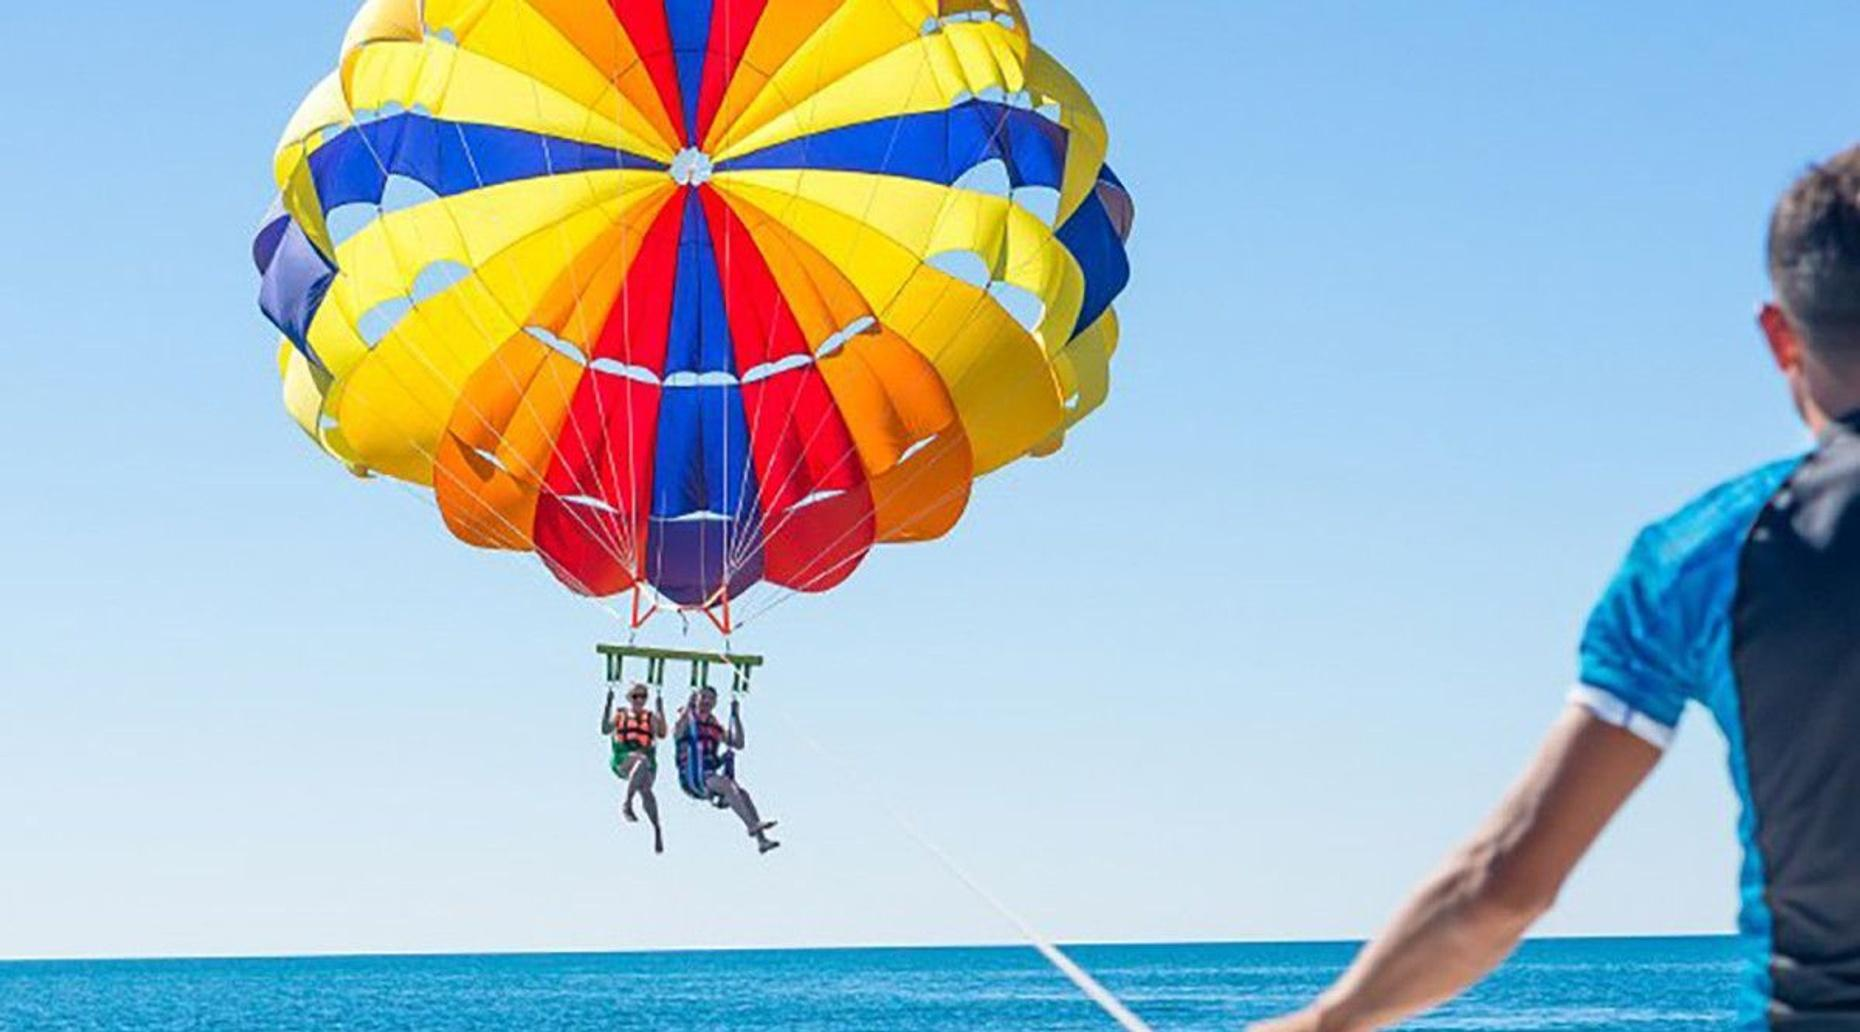 Parasailing Adventure in Miami